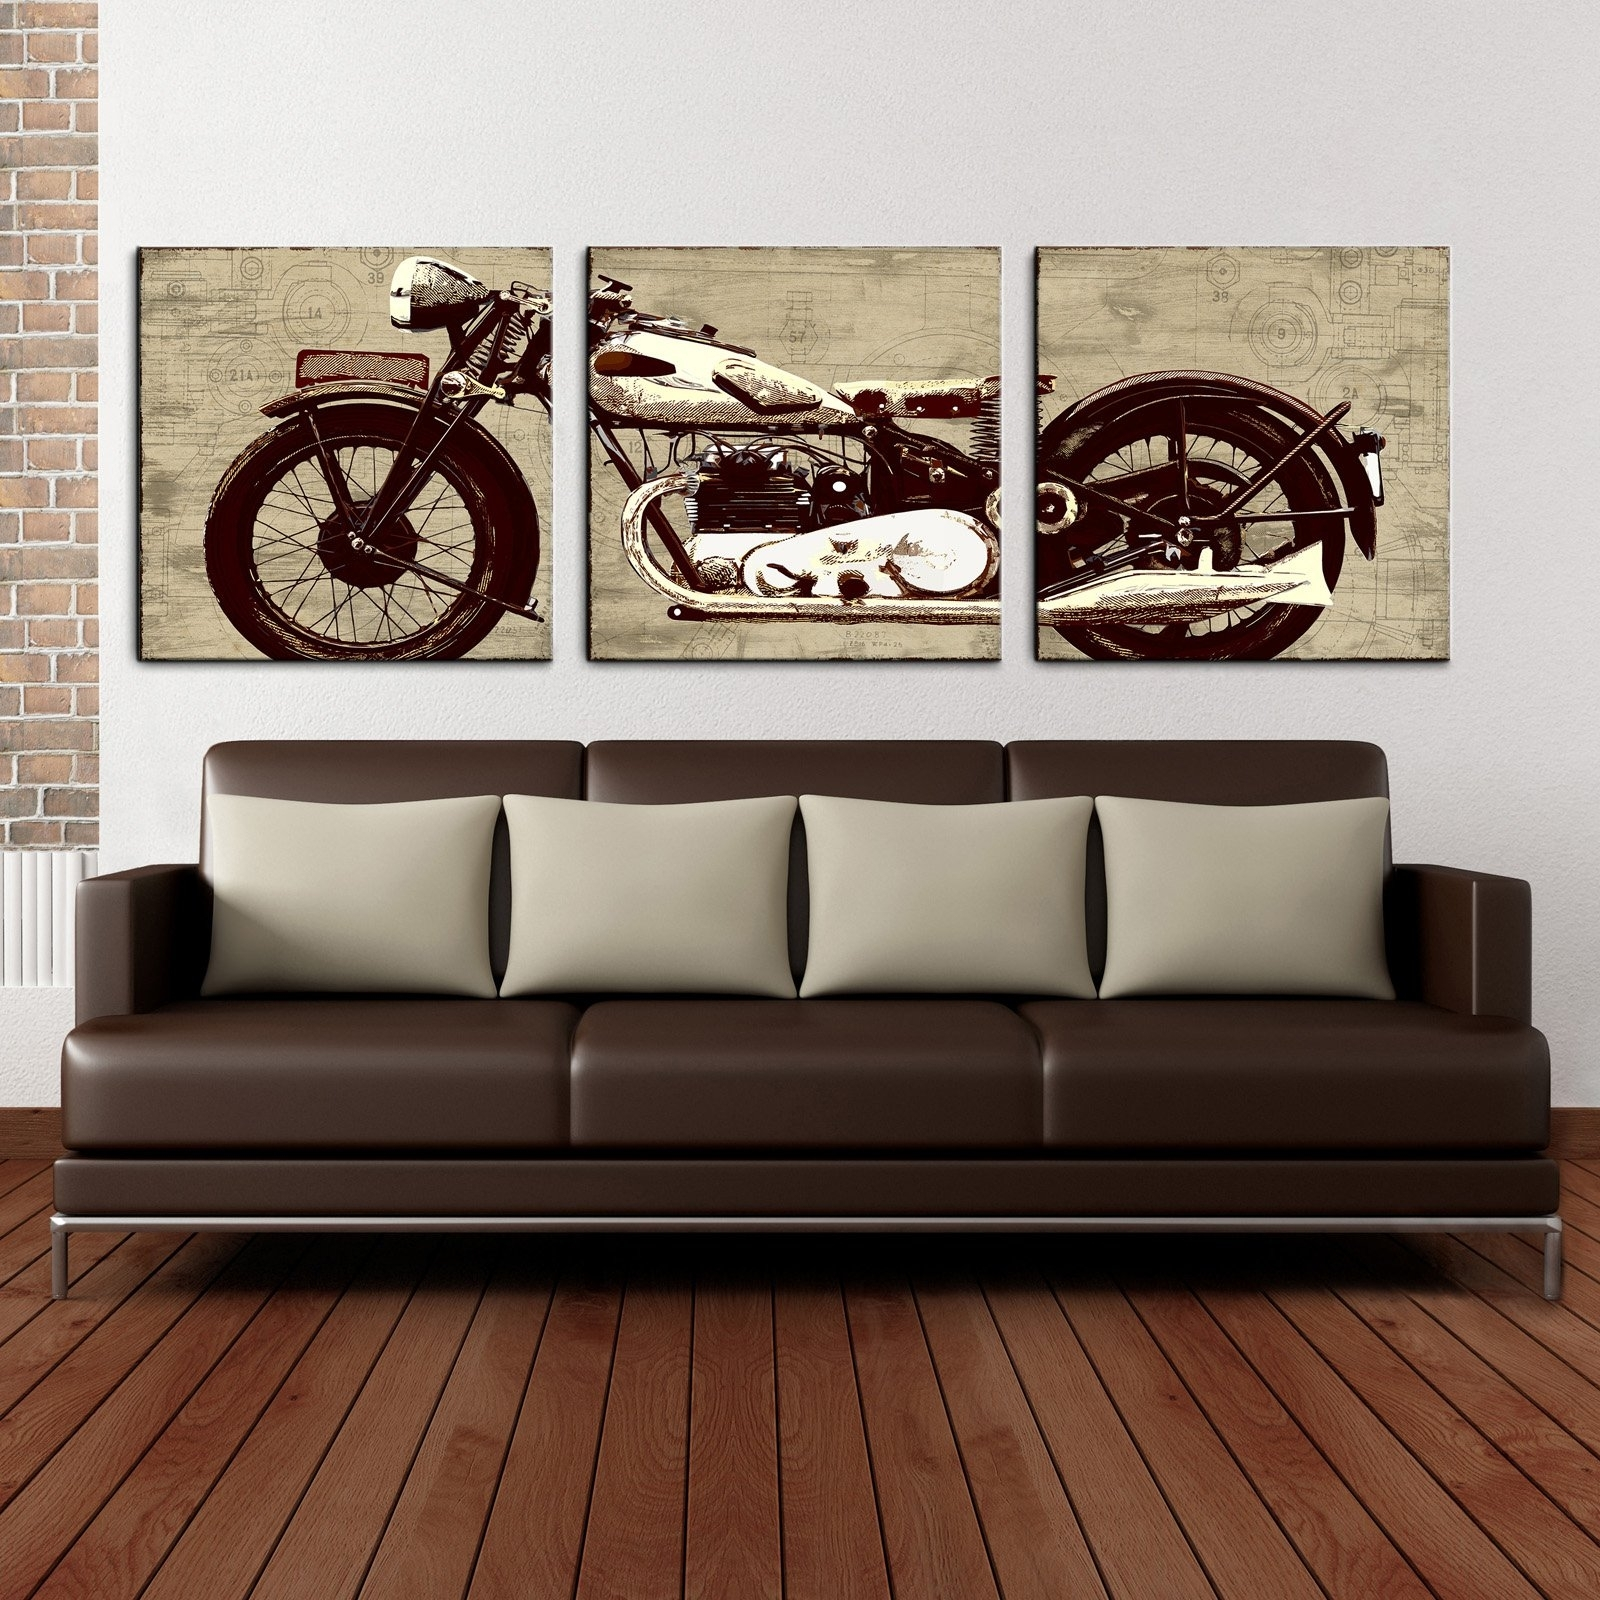 Motorcycle 24 X 72 Canvas Art Print Triptych – Walmart With Regard To Newest Motorcycle Wall Art (View 13 of 20)